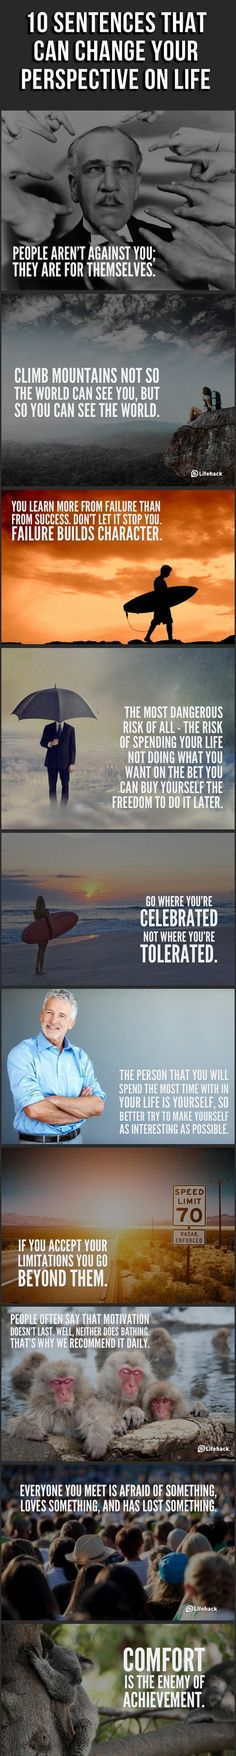 10 sentences that could change your perspective on LIFE <3